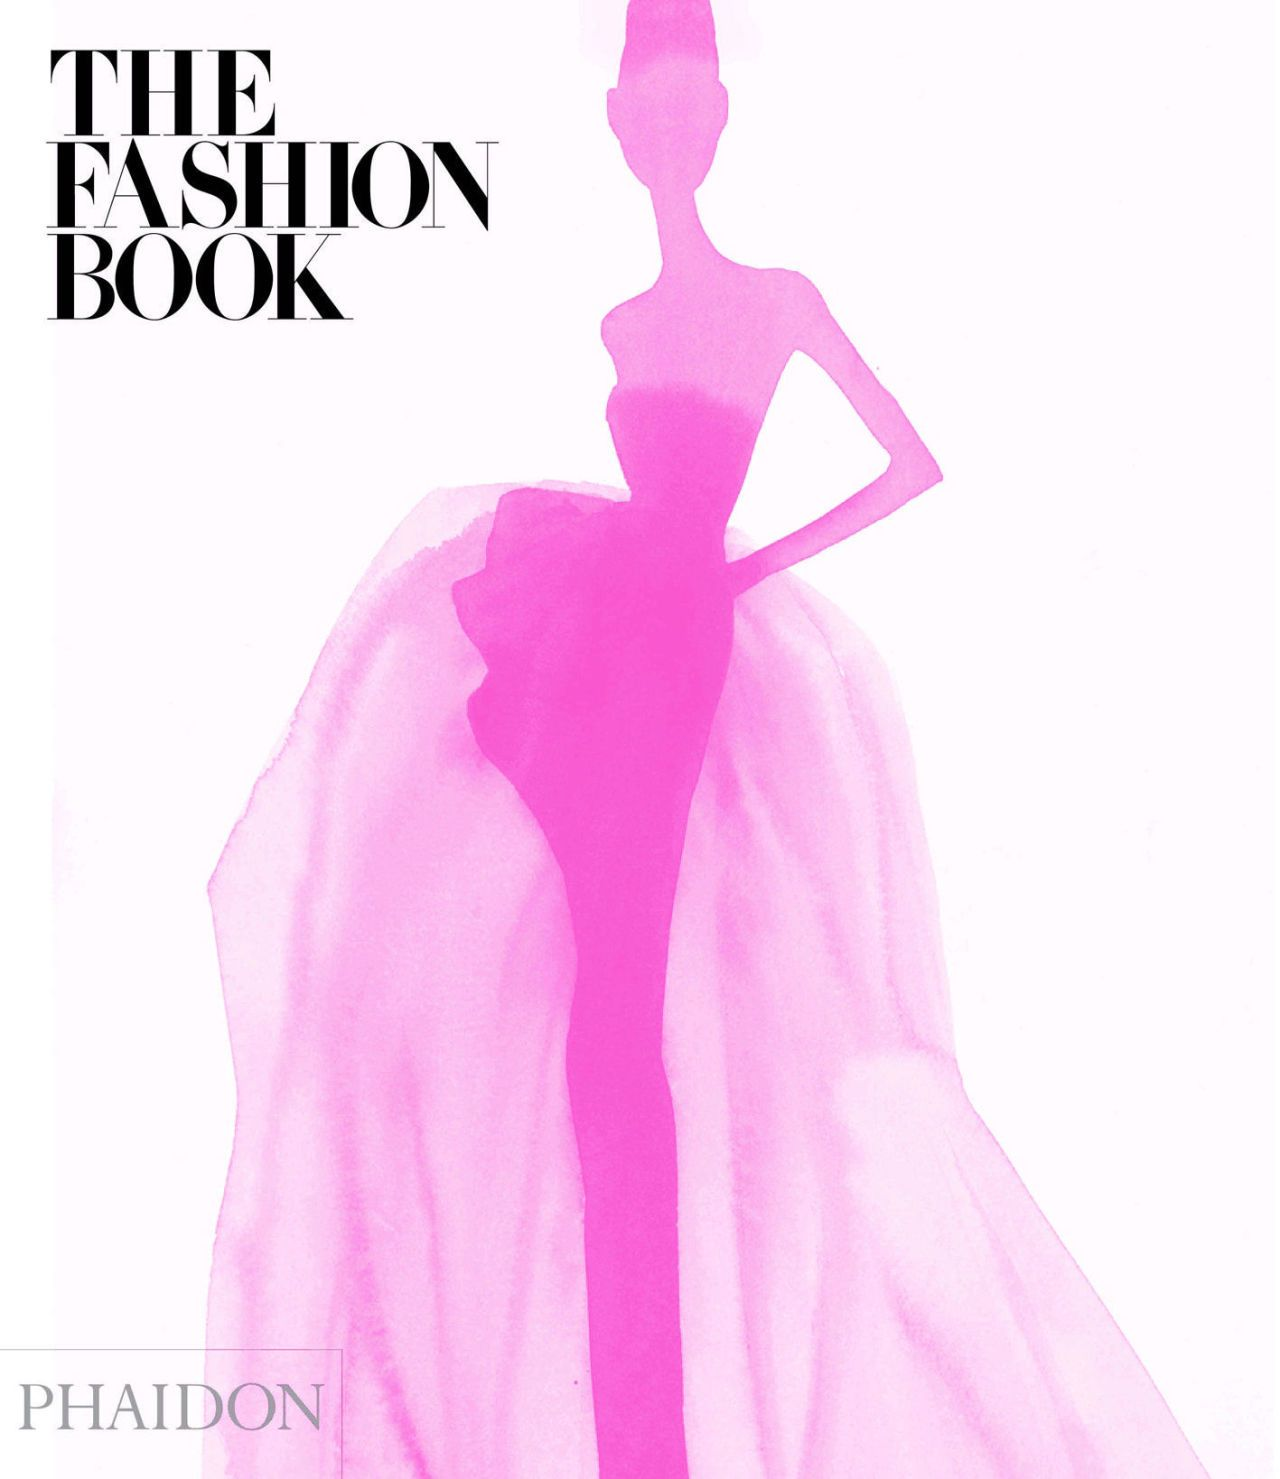 fashion design books for fashion students the best design books The most helpful books to read before embarking upon your fashion career.  See the full list here.